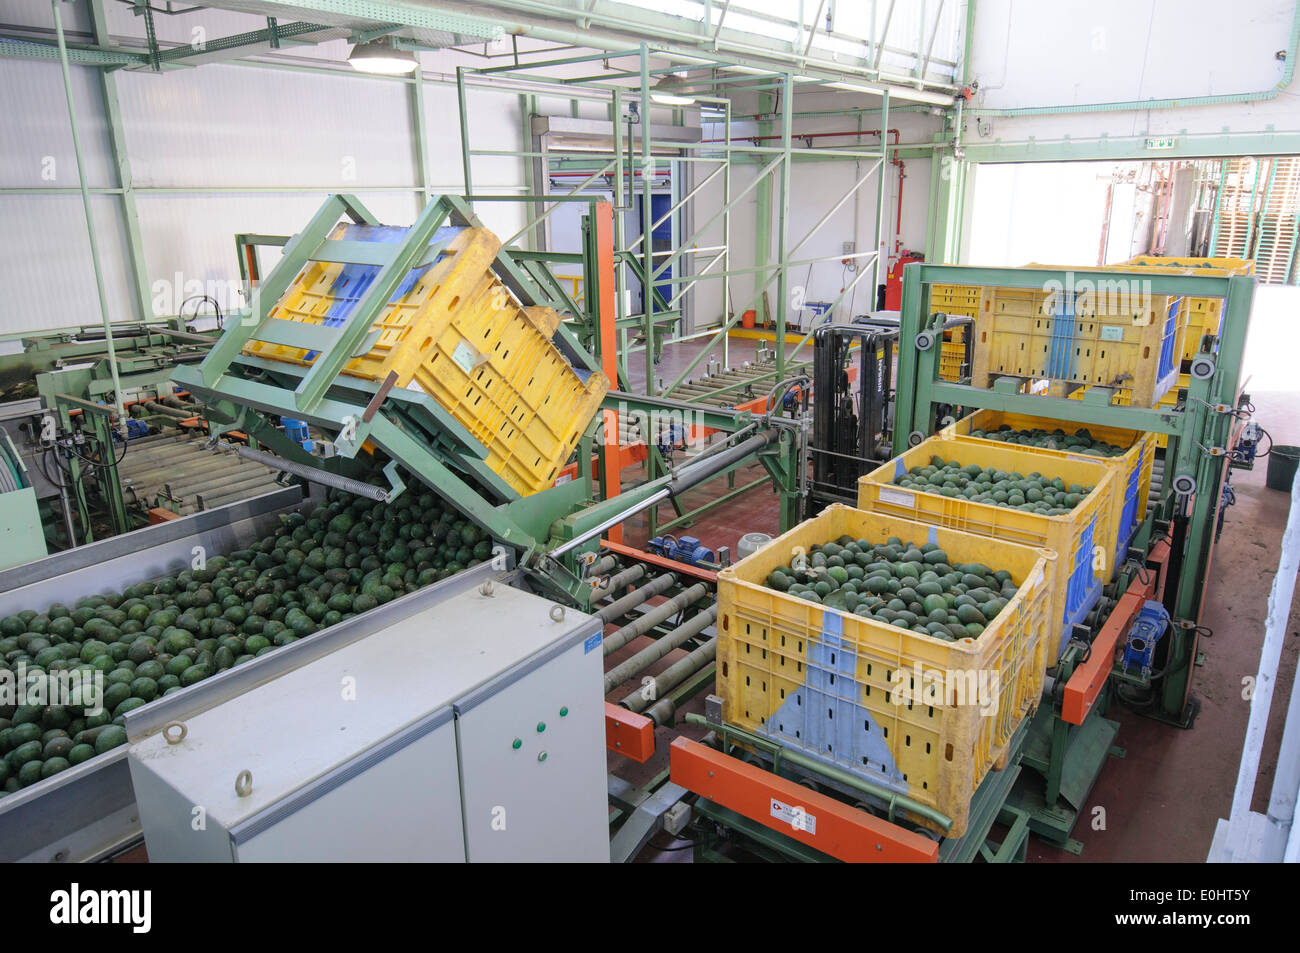 Computerized Avocado sorting and packing plant. - Stock Image